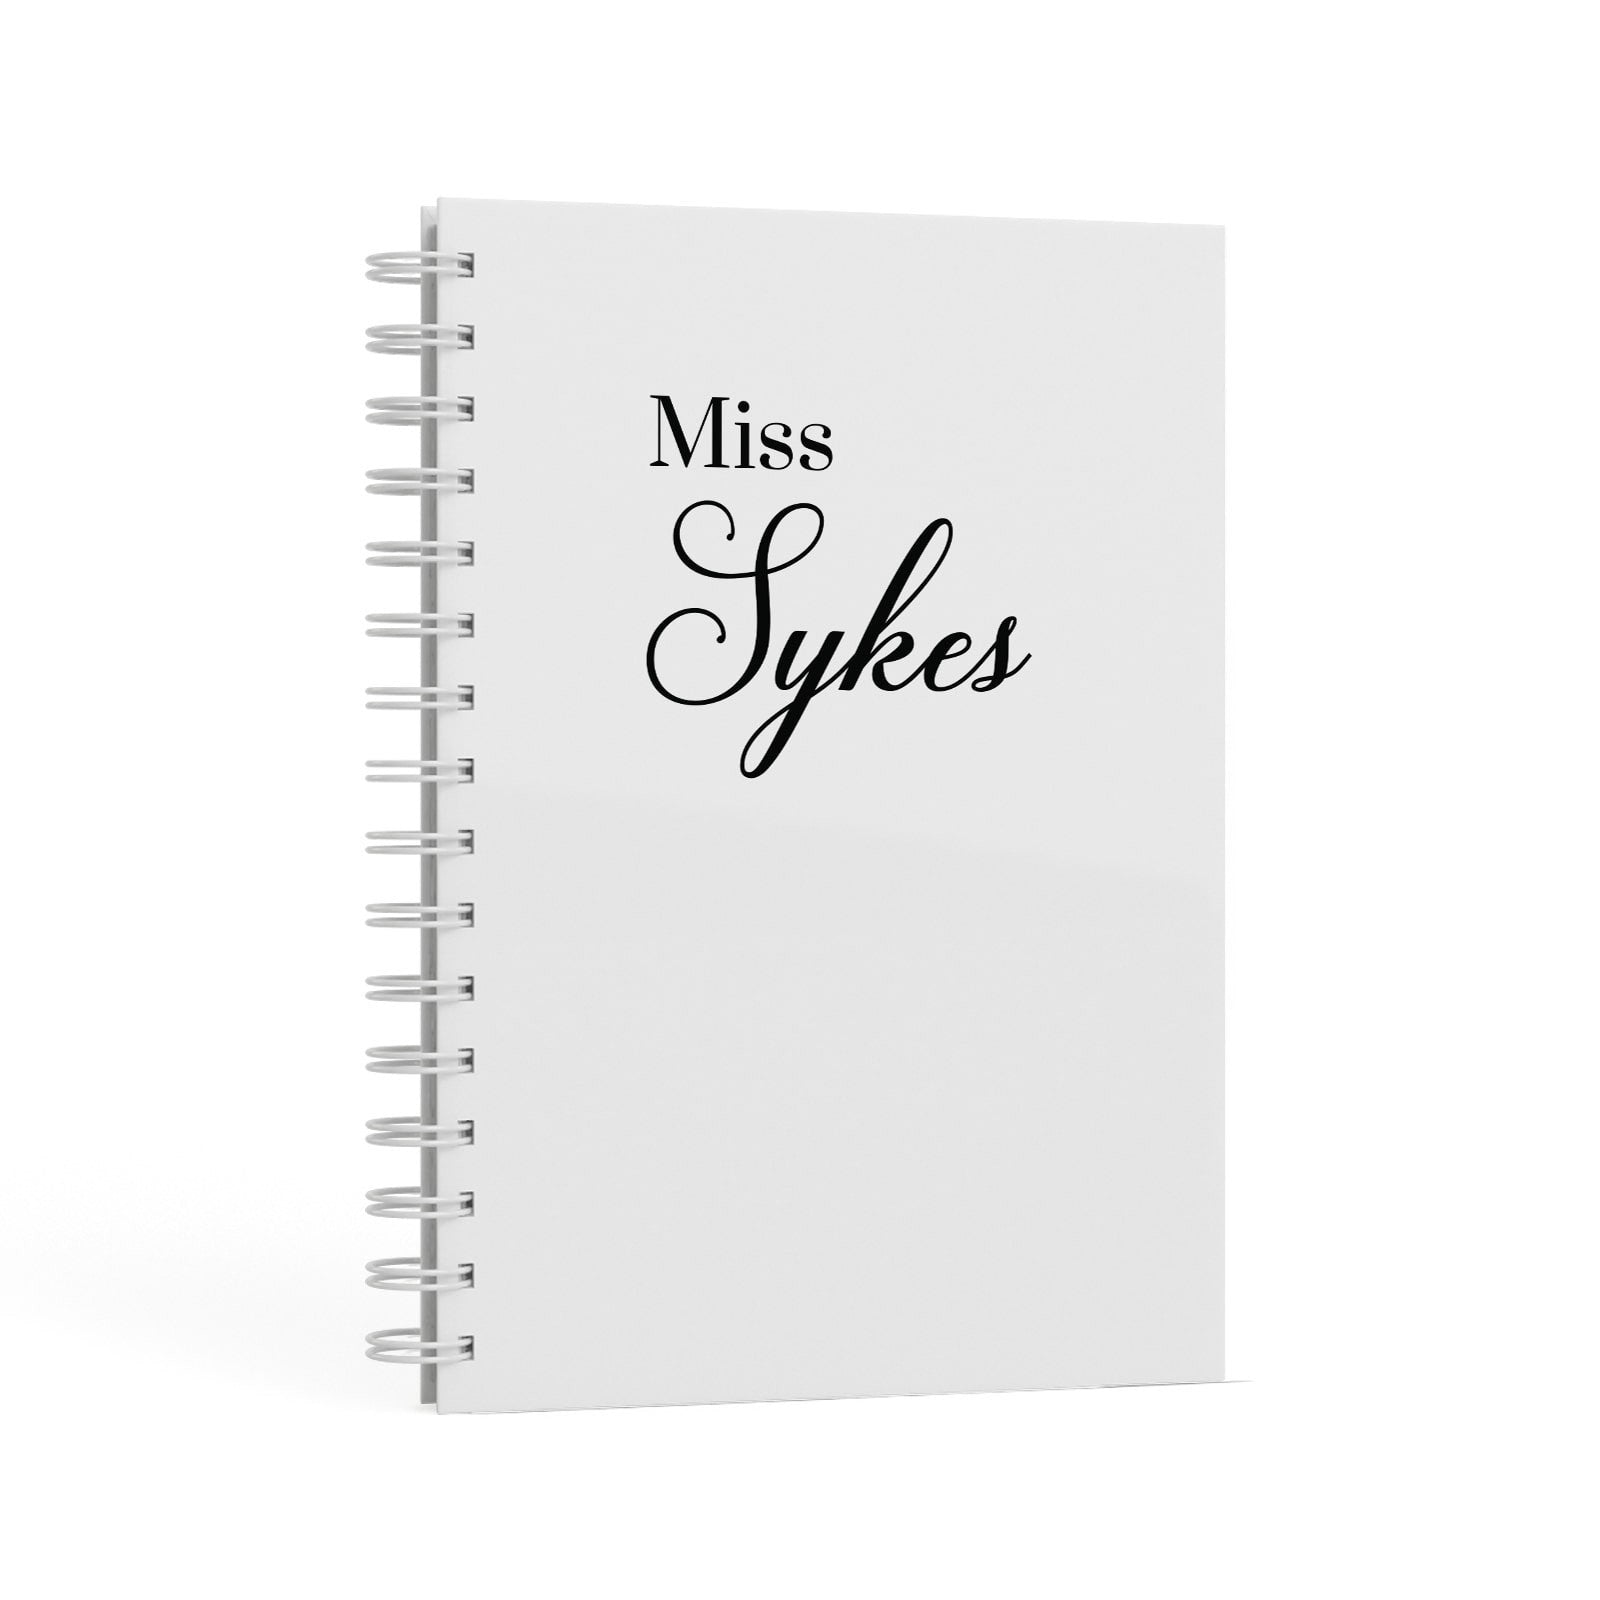 Personalised Wedding Name Miss A5 Hardcover Notebook Second Side View